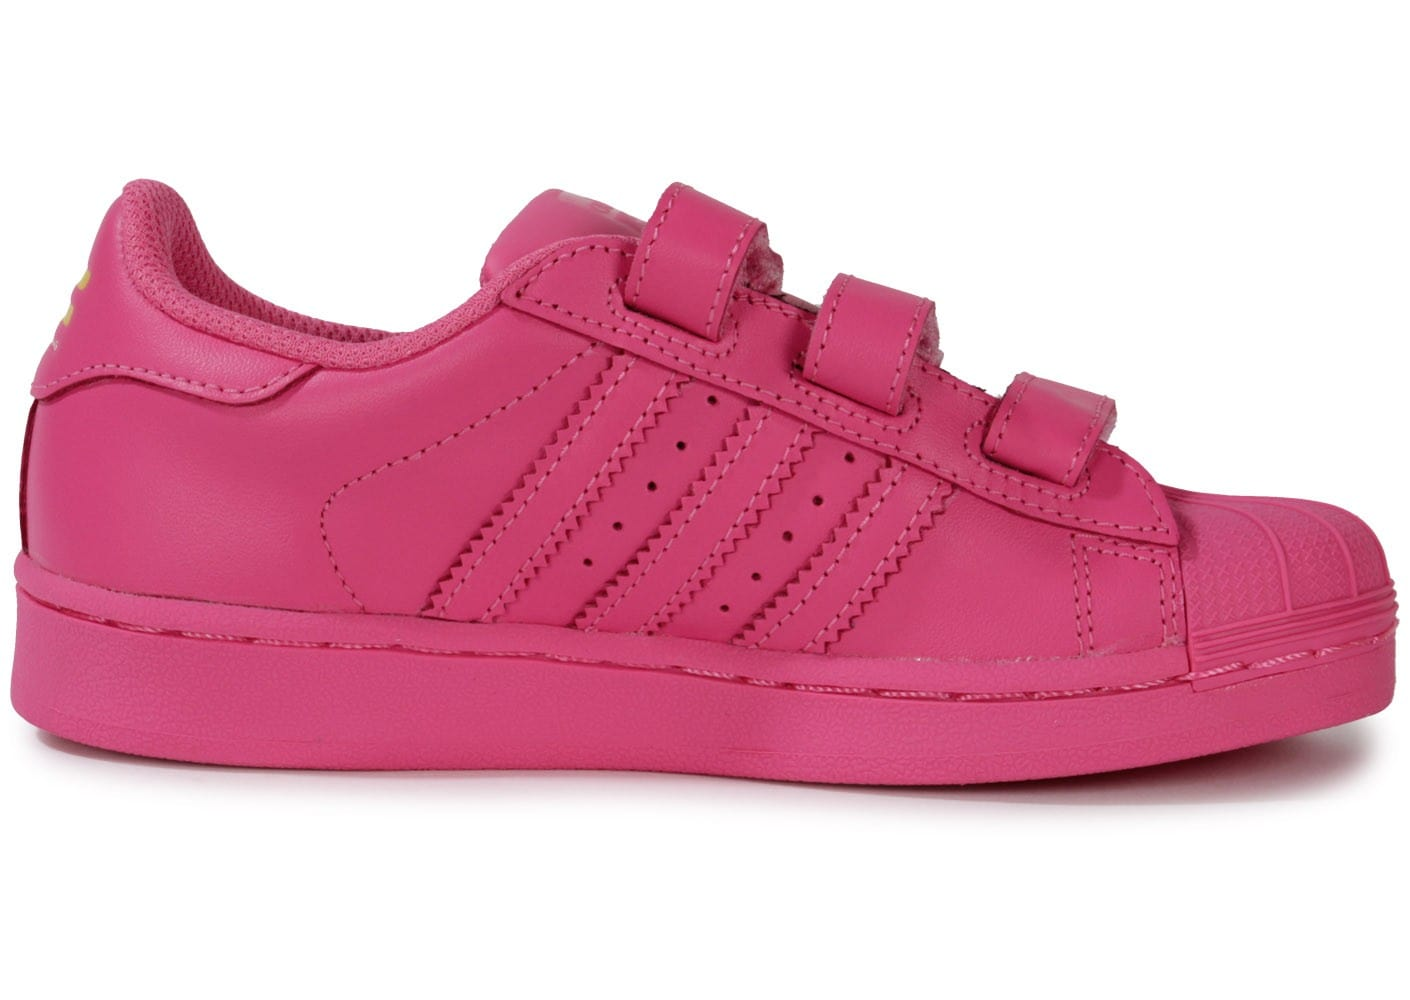 4124e734a713a adidas Superstar Supercolor Rose Enfant - Chaussures adidas - Chausport